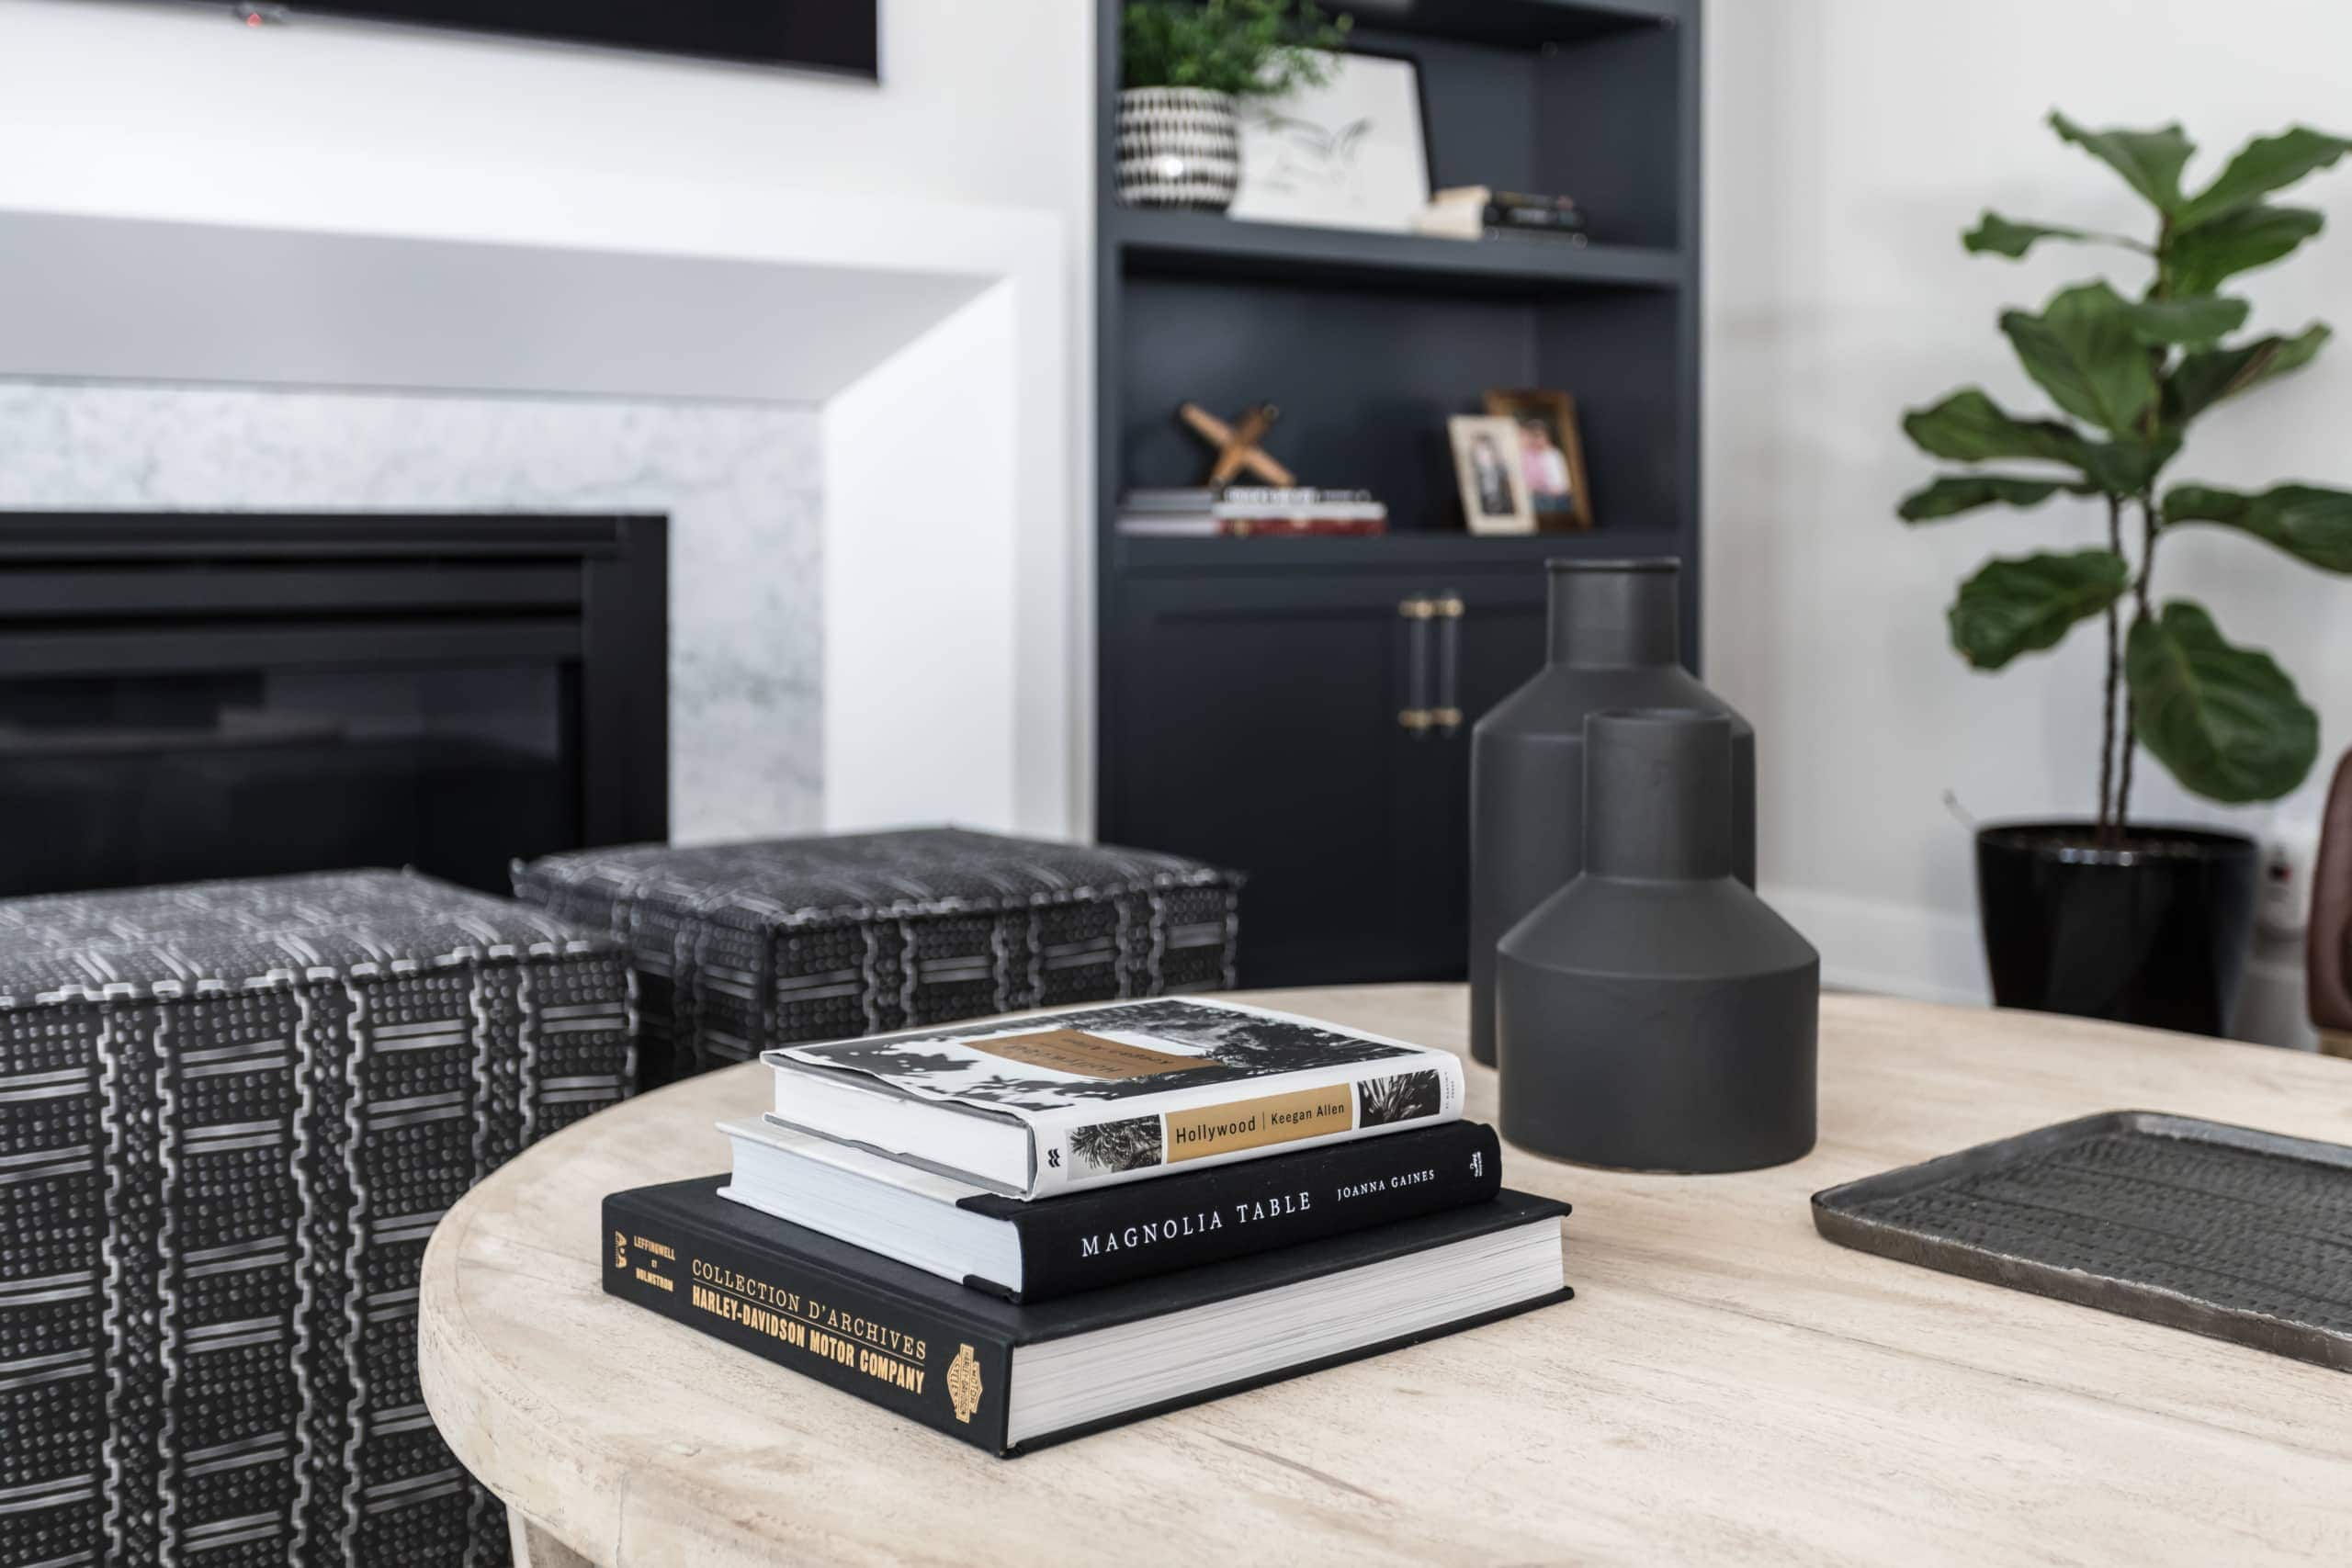 Three books on a round wooden table